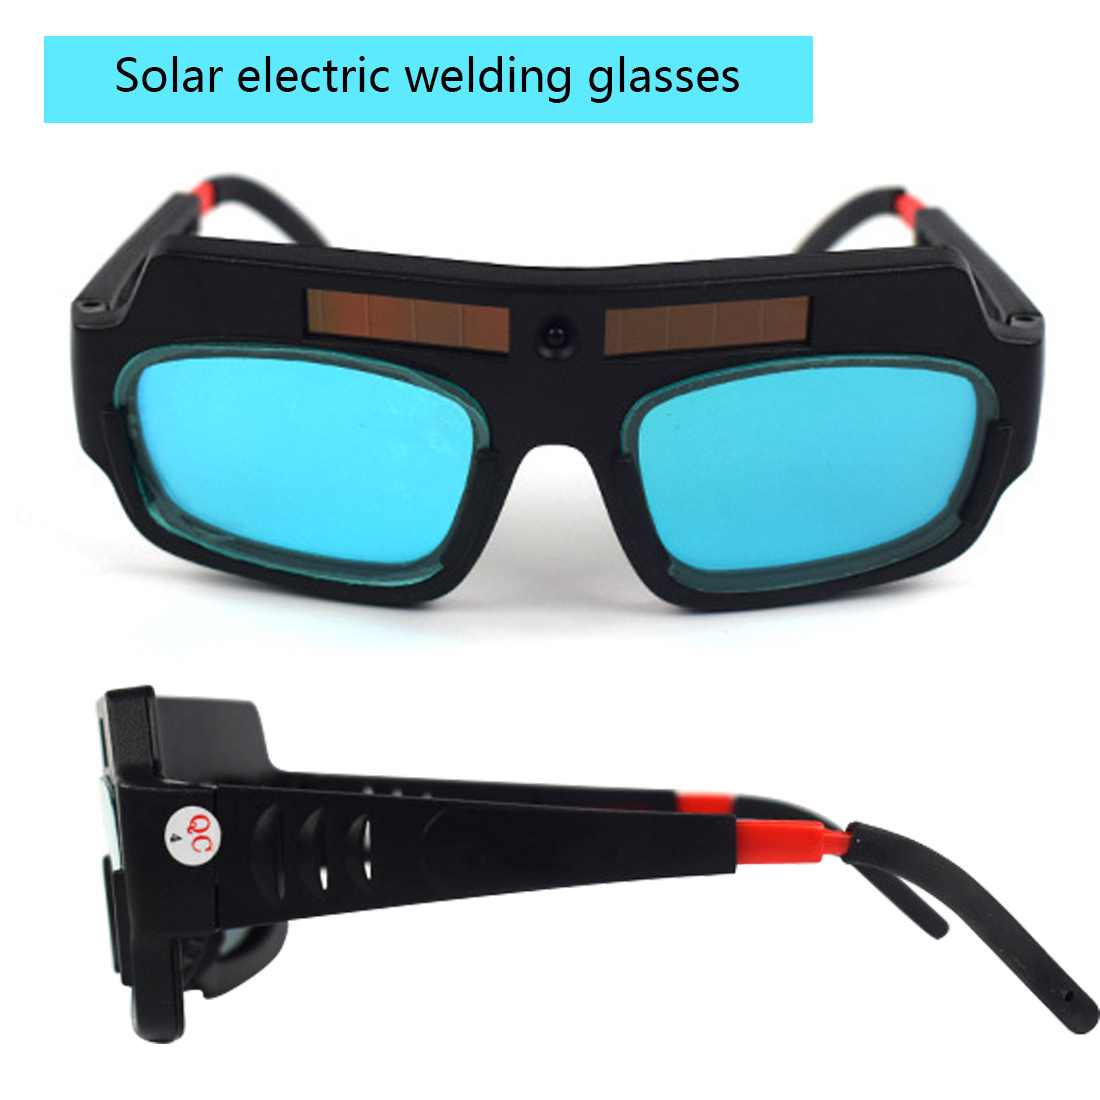 1Pc Great Goggles For Welding Protection Solar Powered Auto Darkening Welding Mask Helmet Goggle Welder Glasses Arc Lens